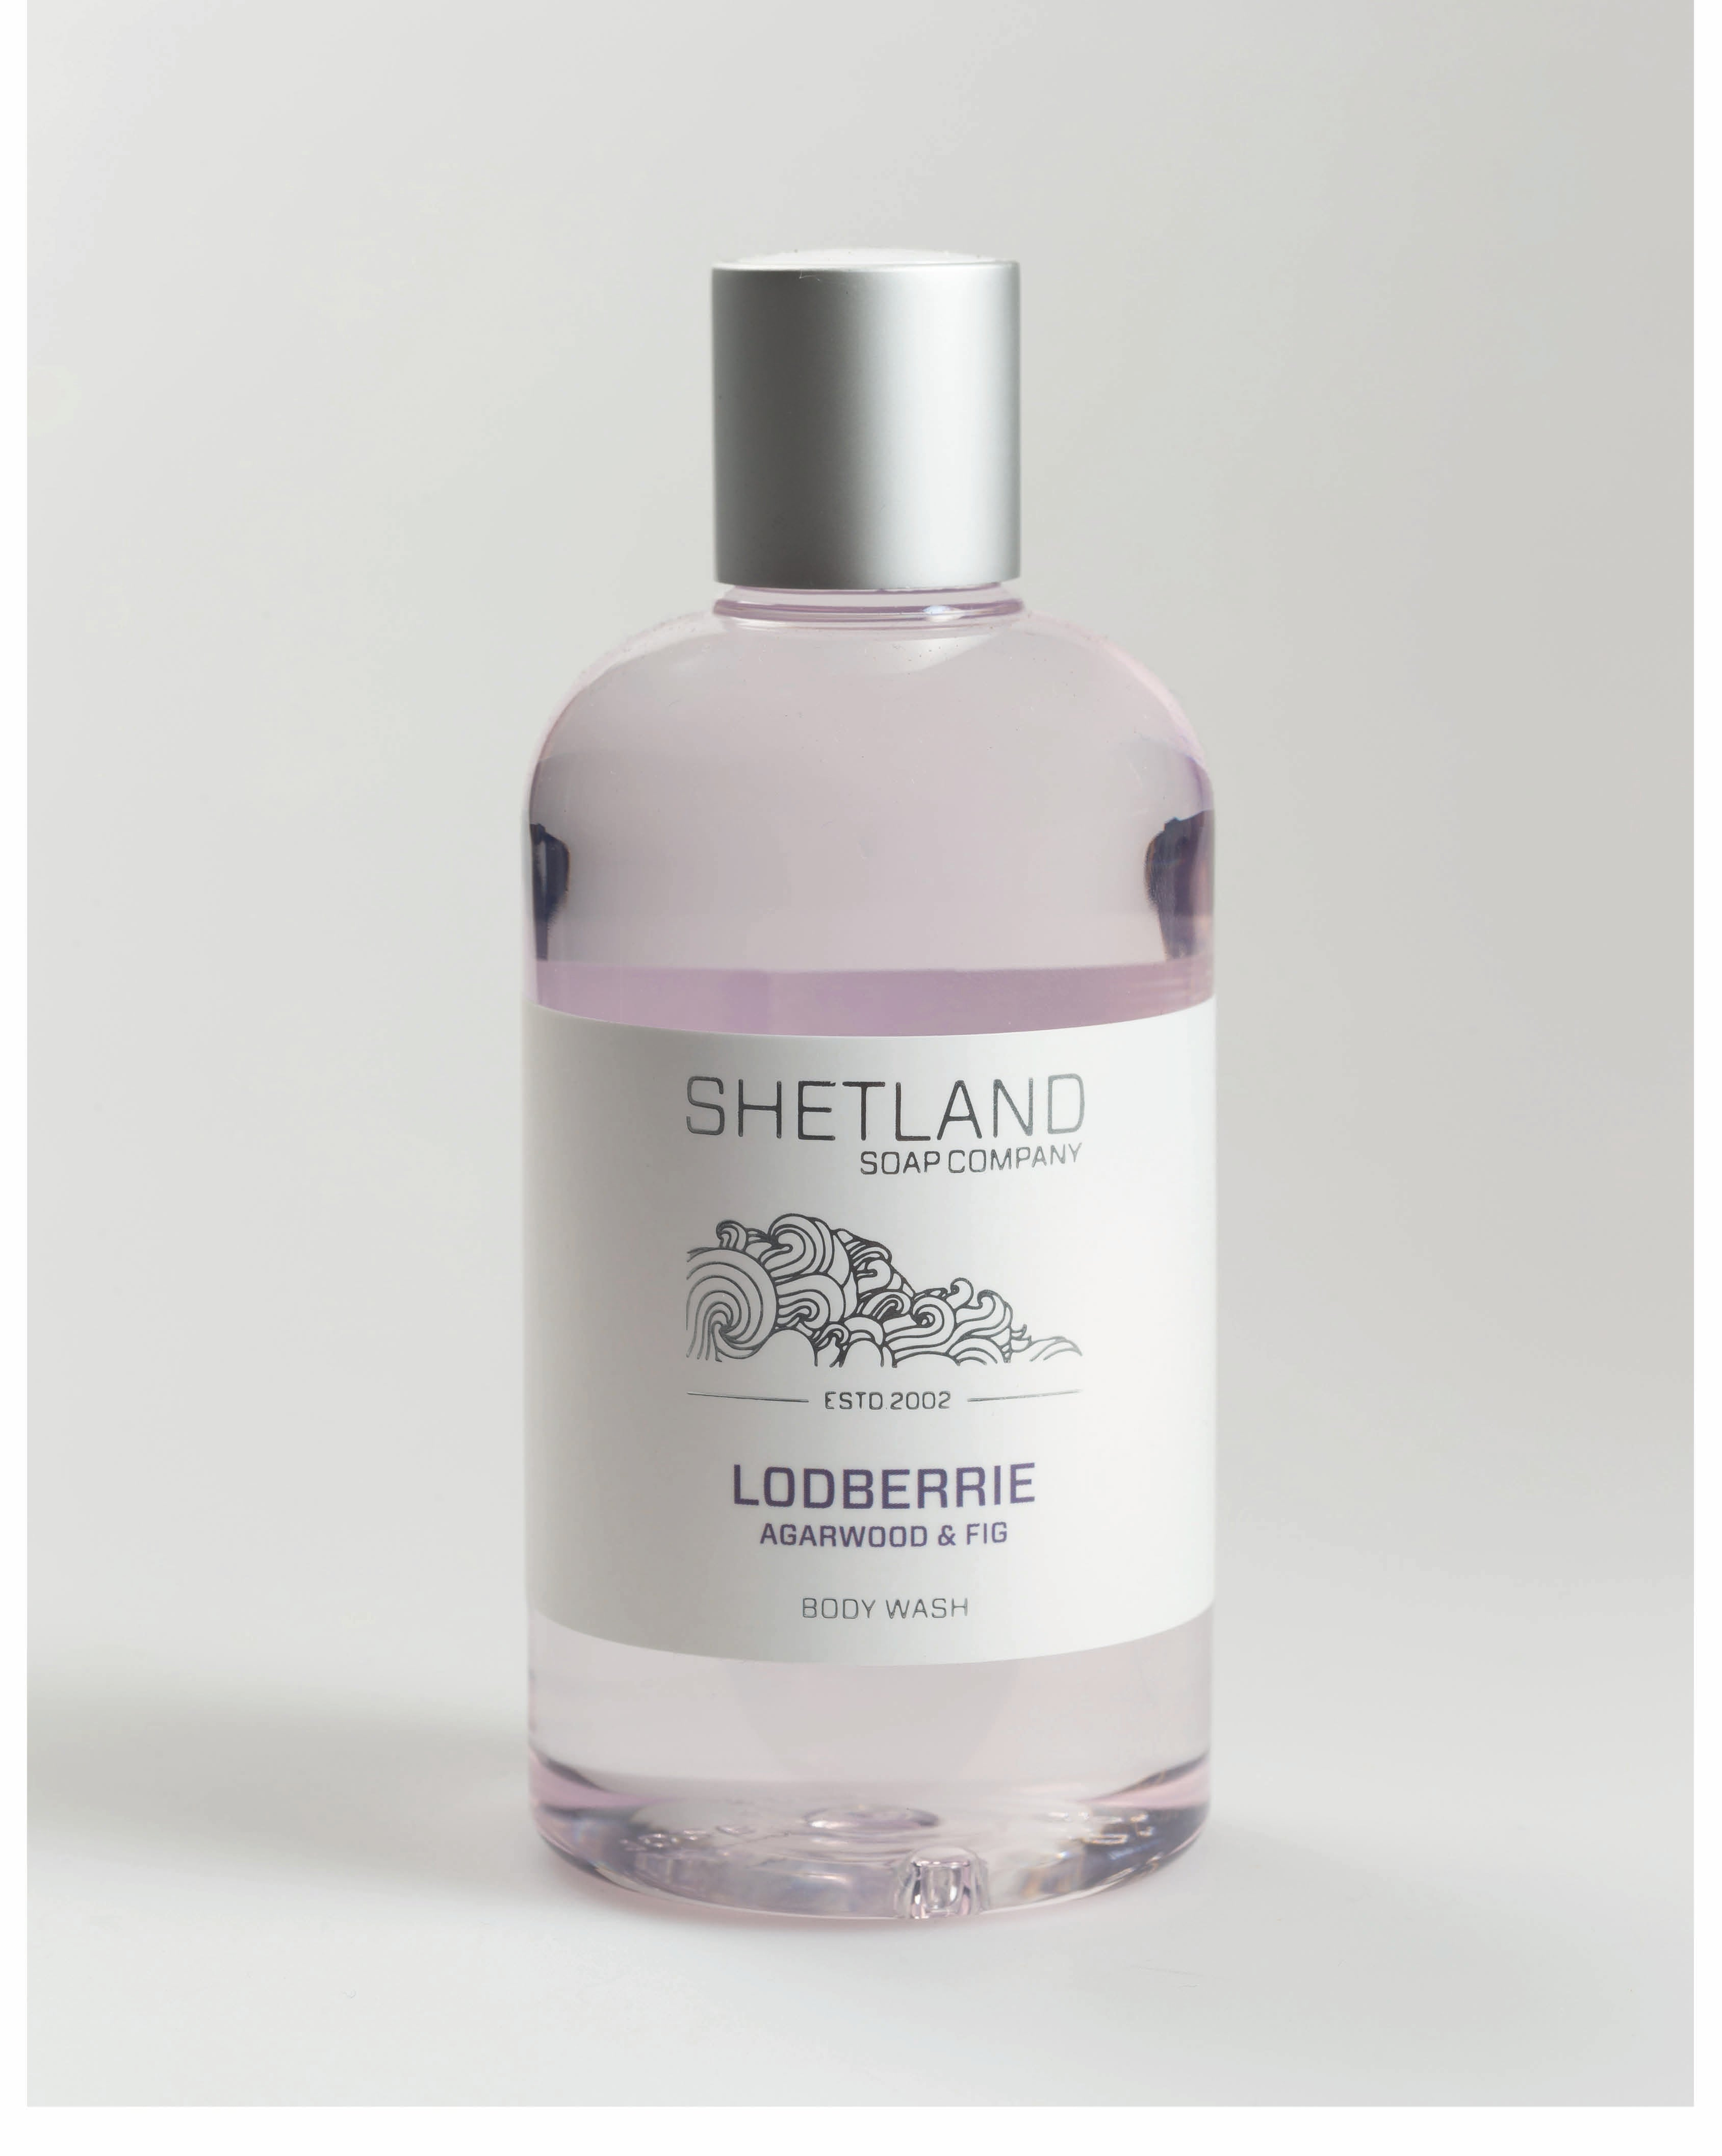 LODBERRIE BODY WASH